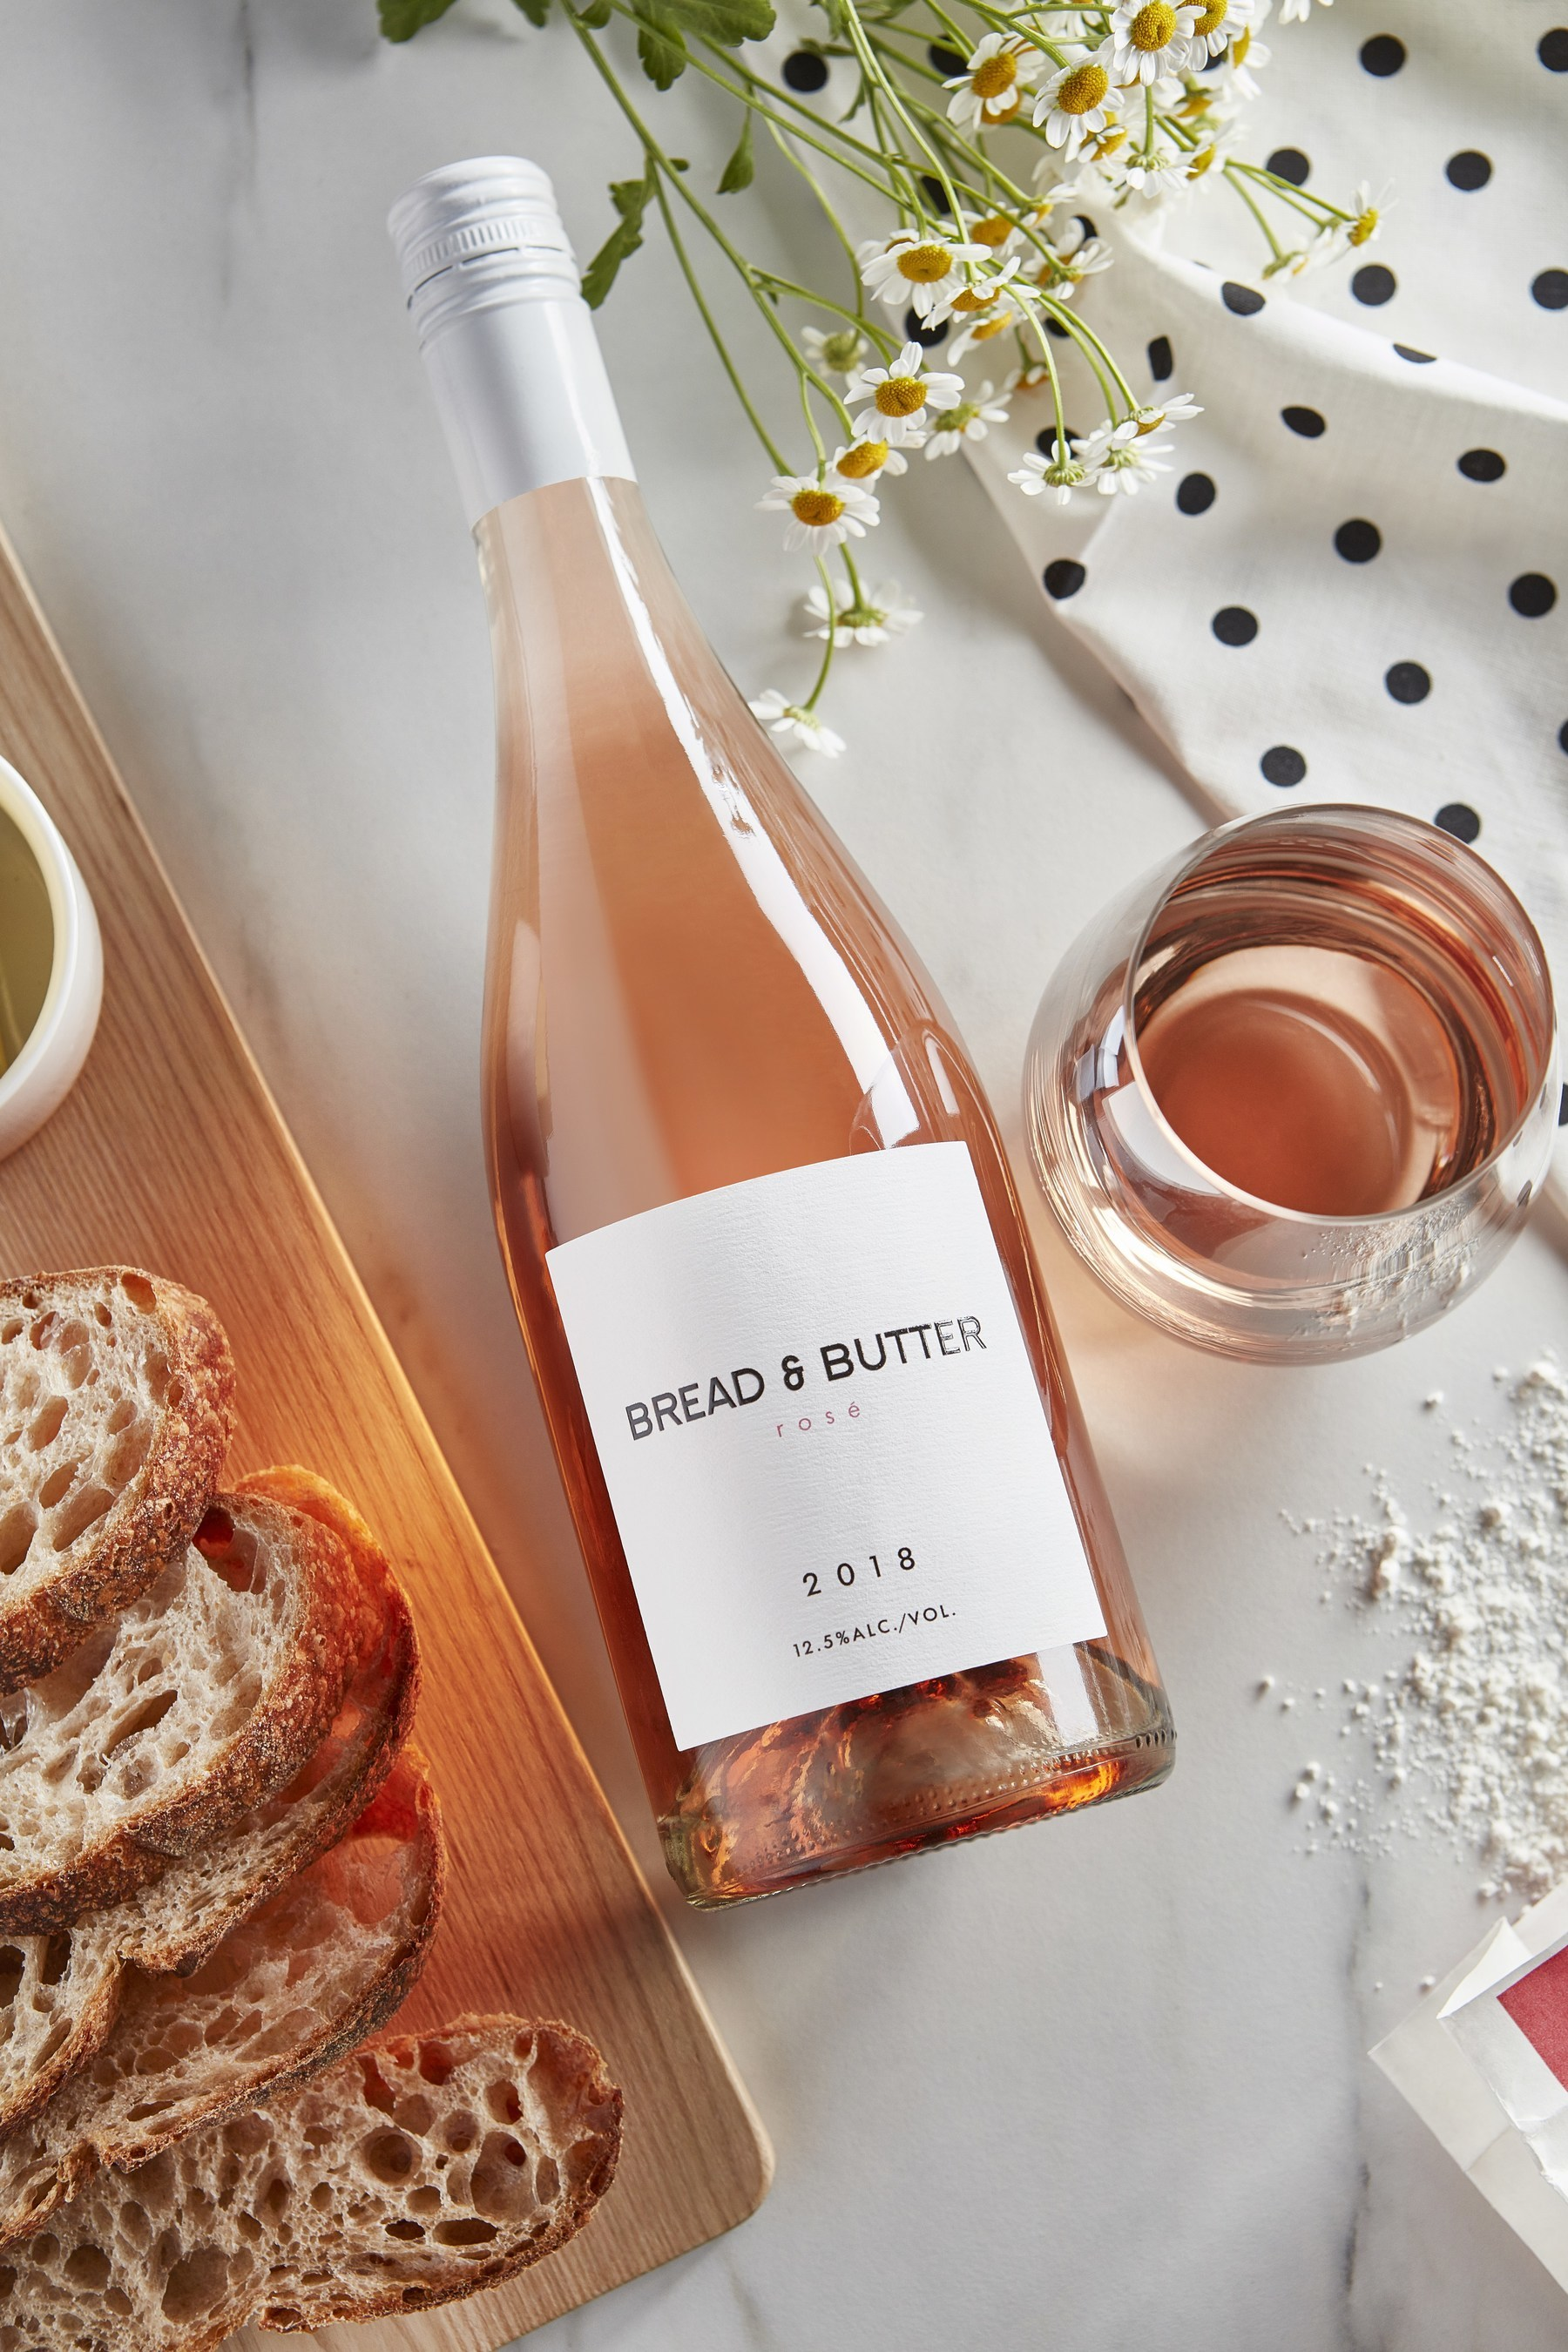 Bread & Butter Wines announces the addition of Bread & Butter Rosé.